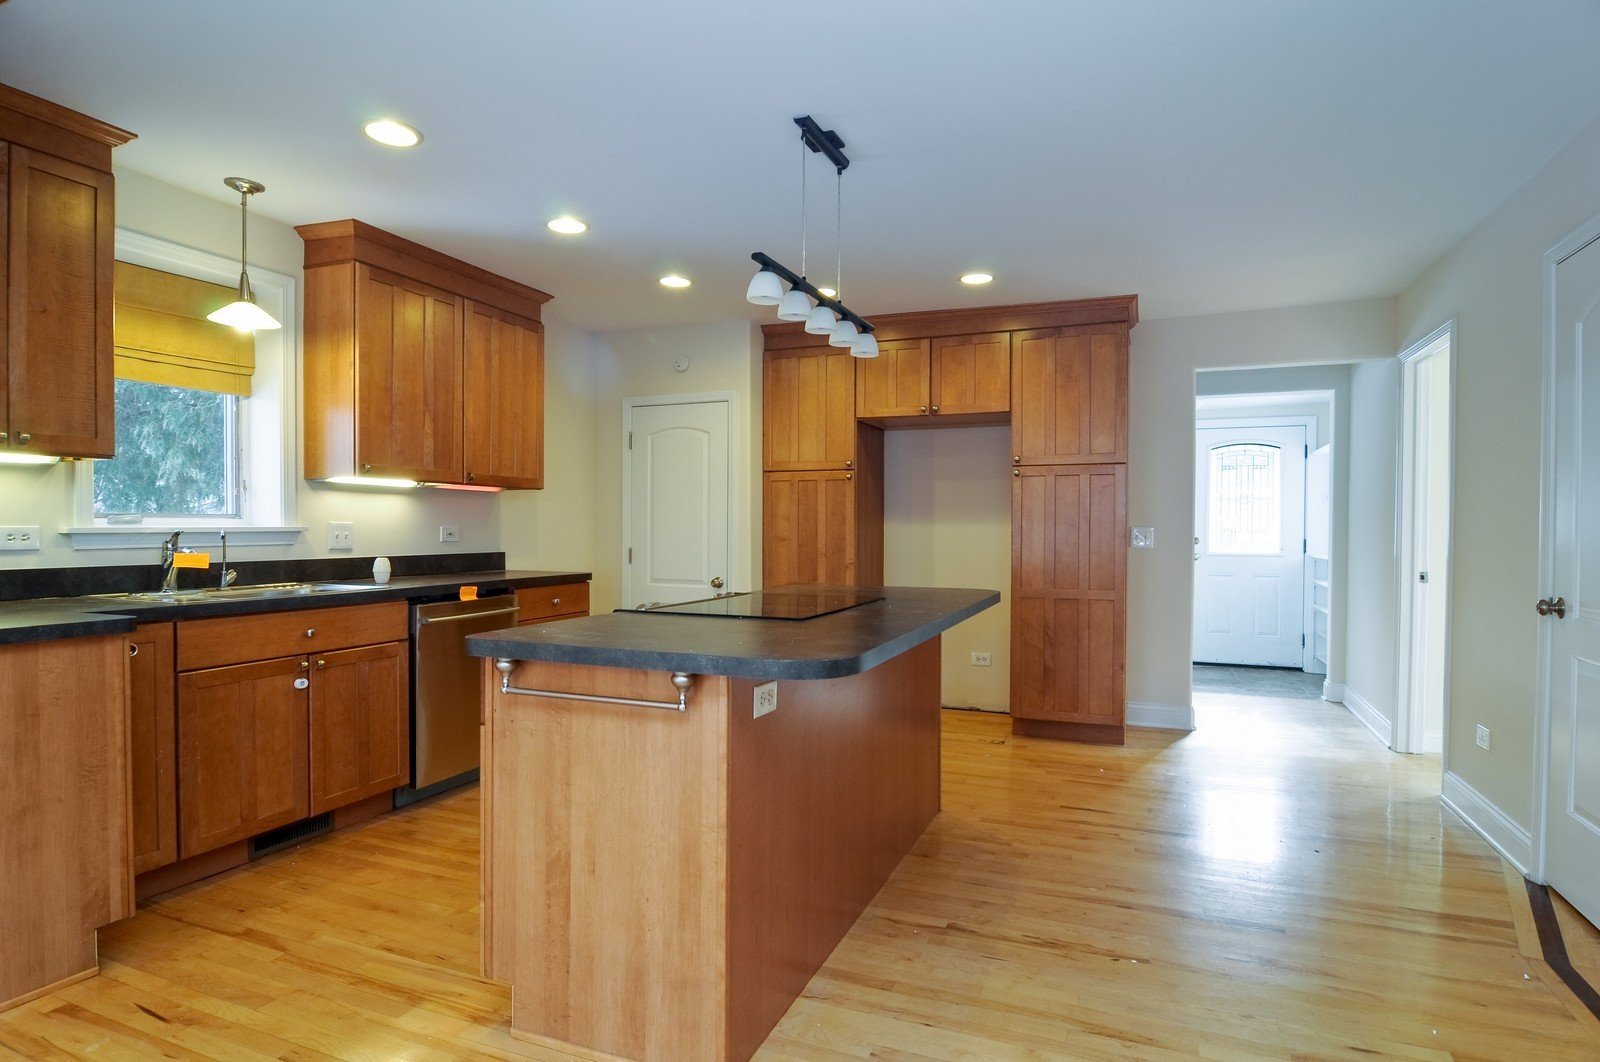 Real Estate Photography - 109 N River Rd, Fox River Grove, IL, 60021 - Kitchen